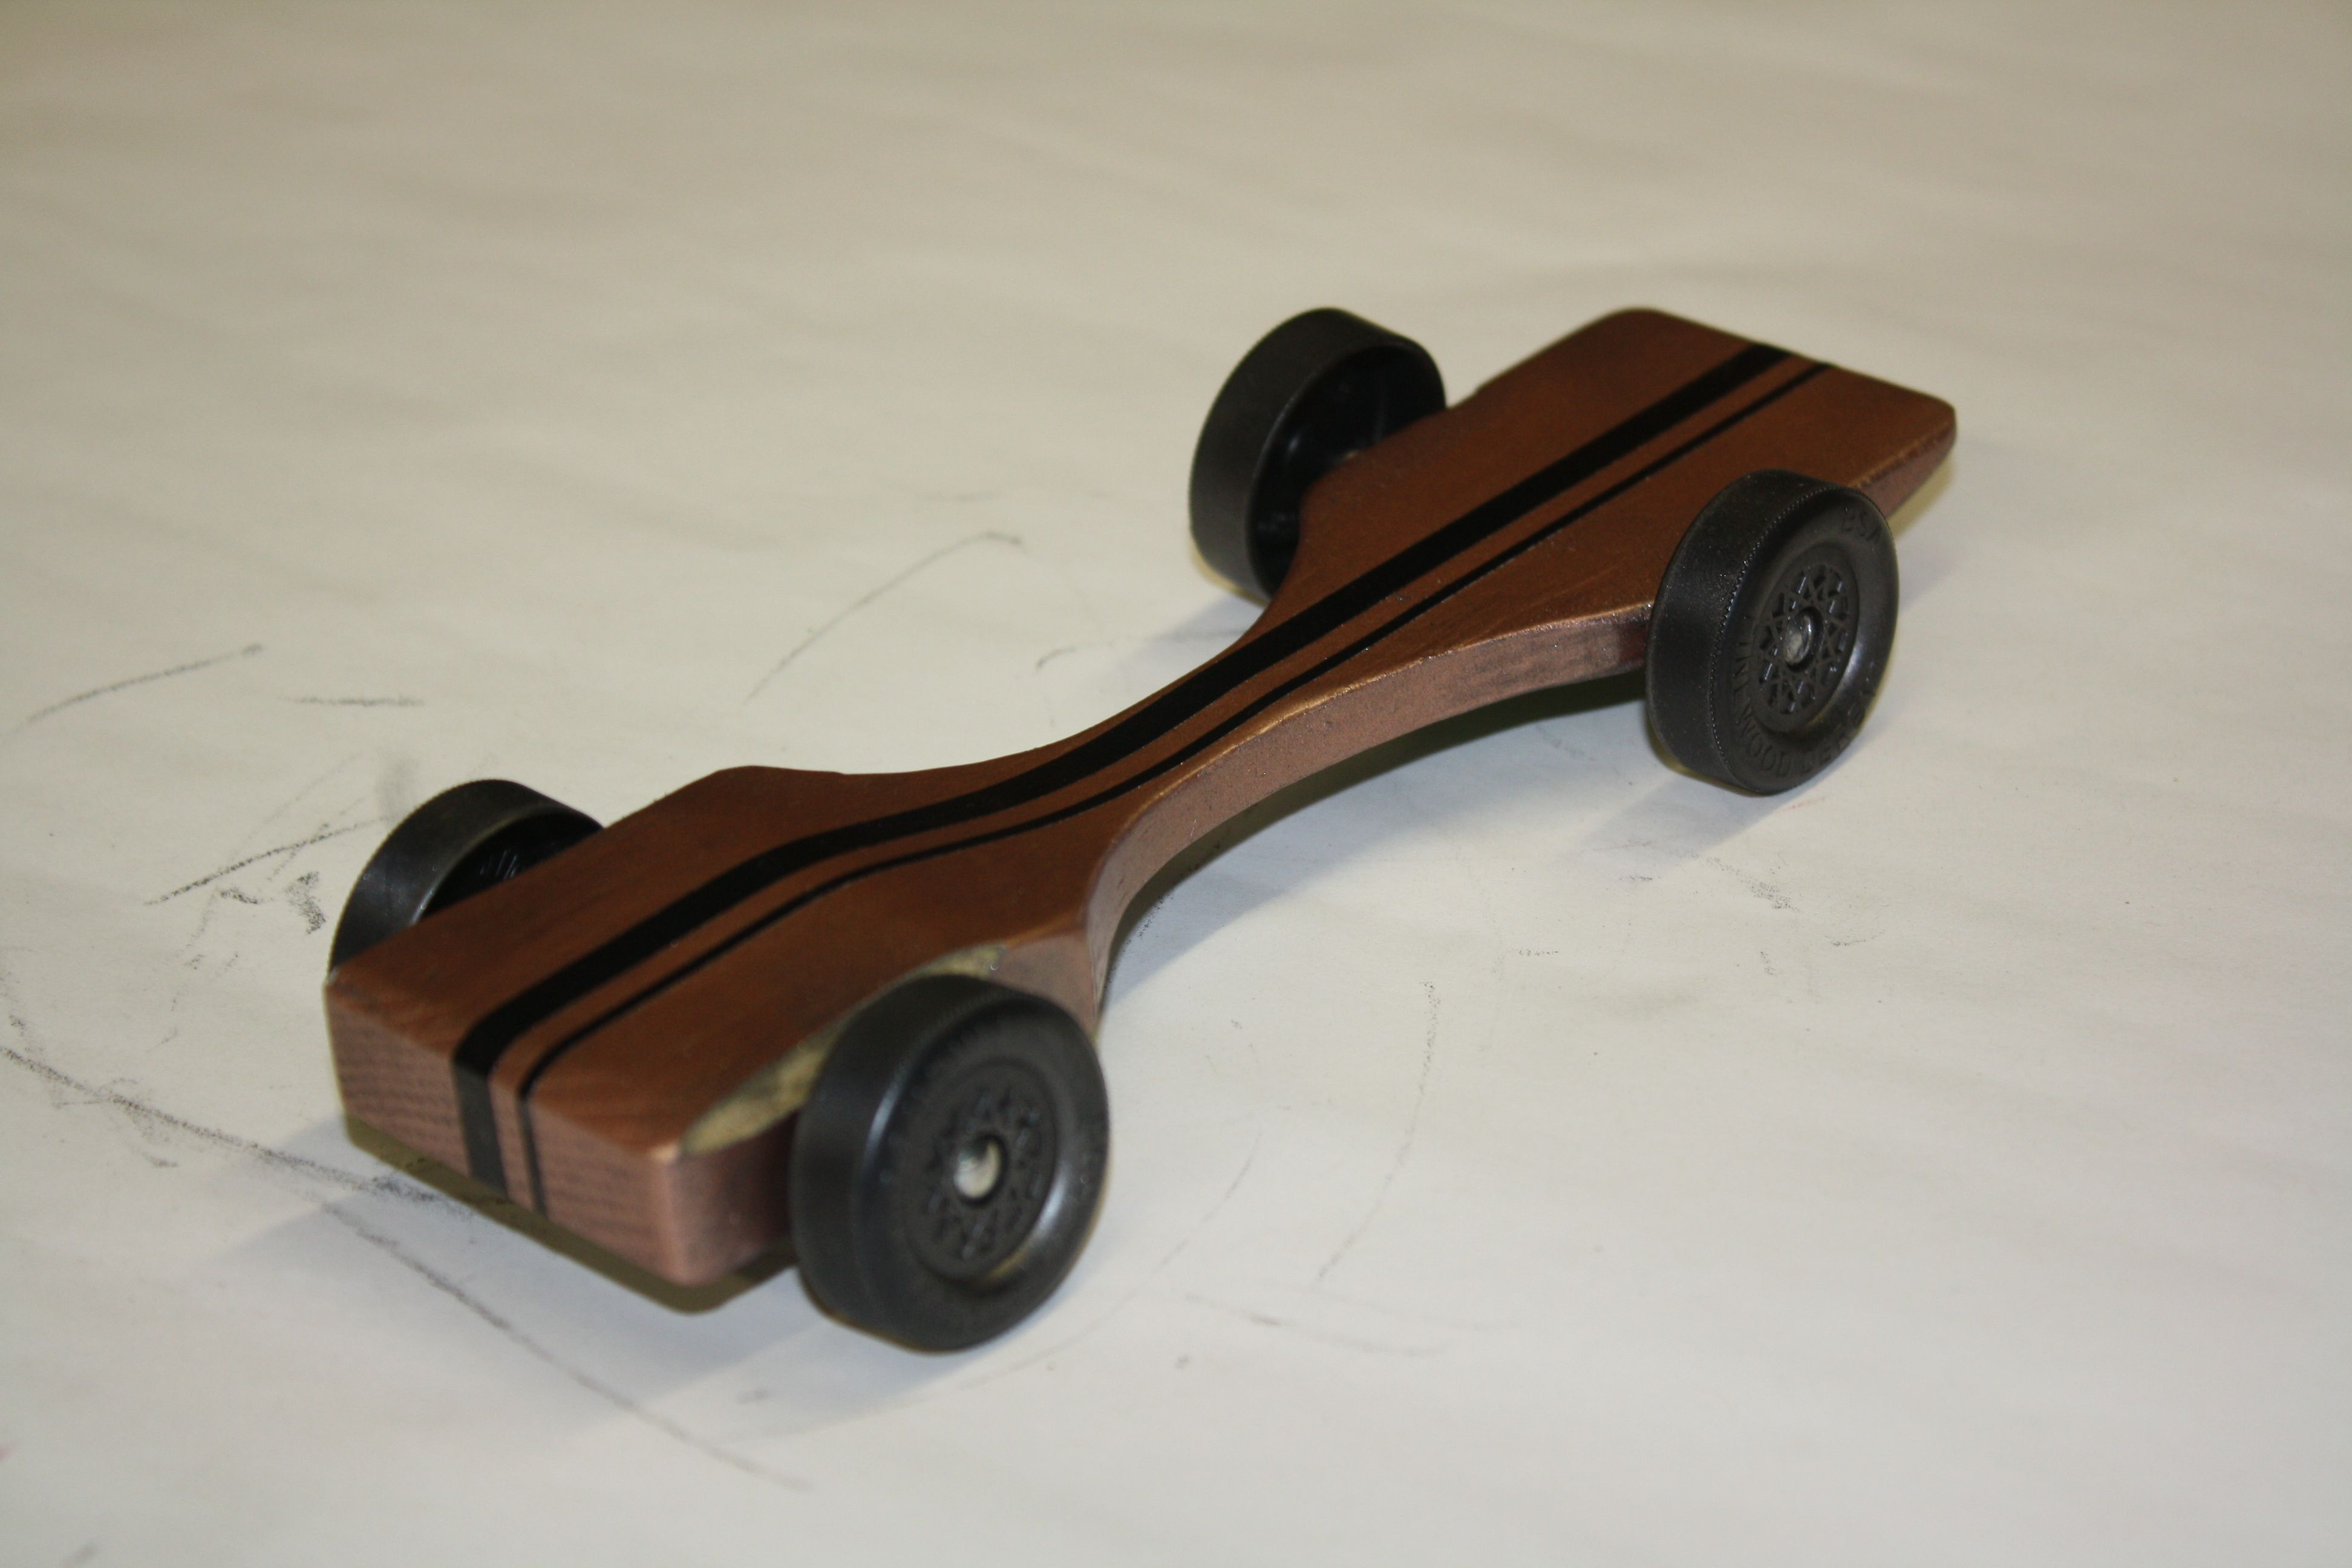 pinewood derby corvette template - 18 fast pinewood derby car templates images best pine